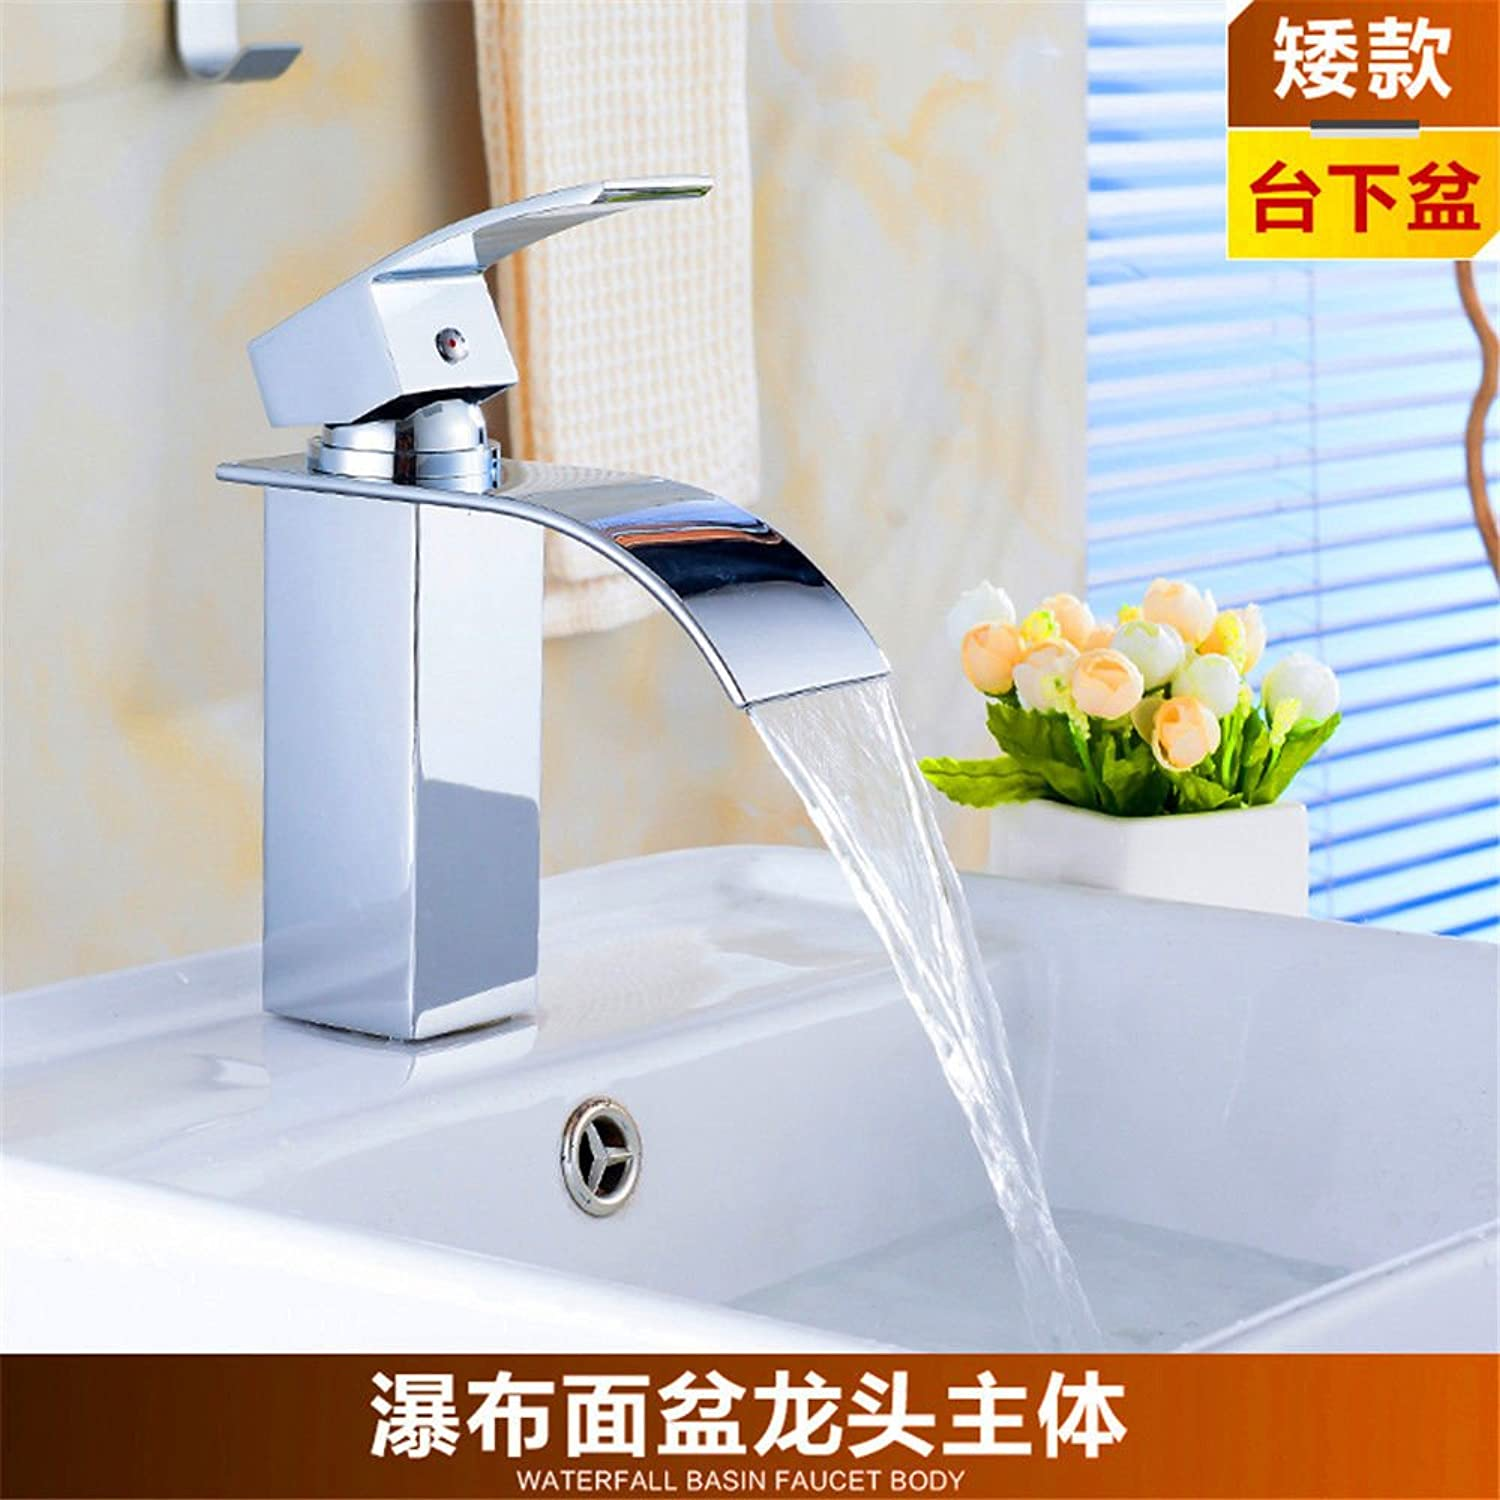 AQMMi Basin Taps Bathroom Sink Faucet Brass Hot and Cold Water Flat Mouth Waterfall Single Hole Single Lever Bathroom Sink Faucet Basin Mixer Tap